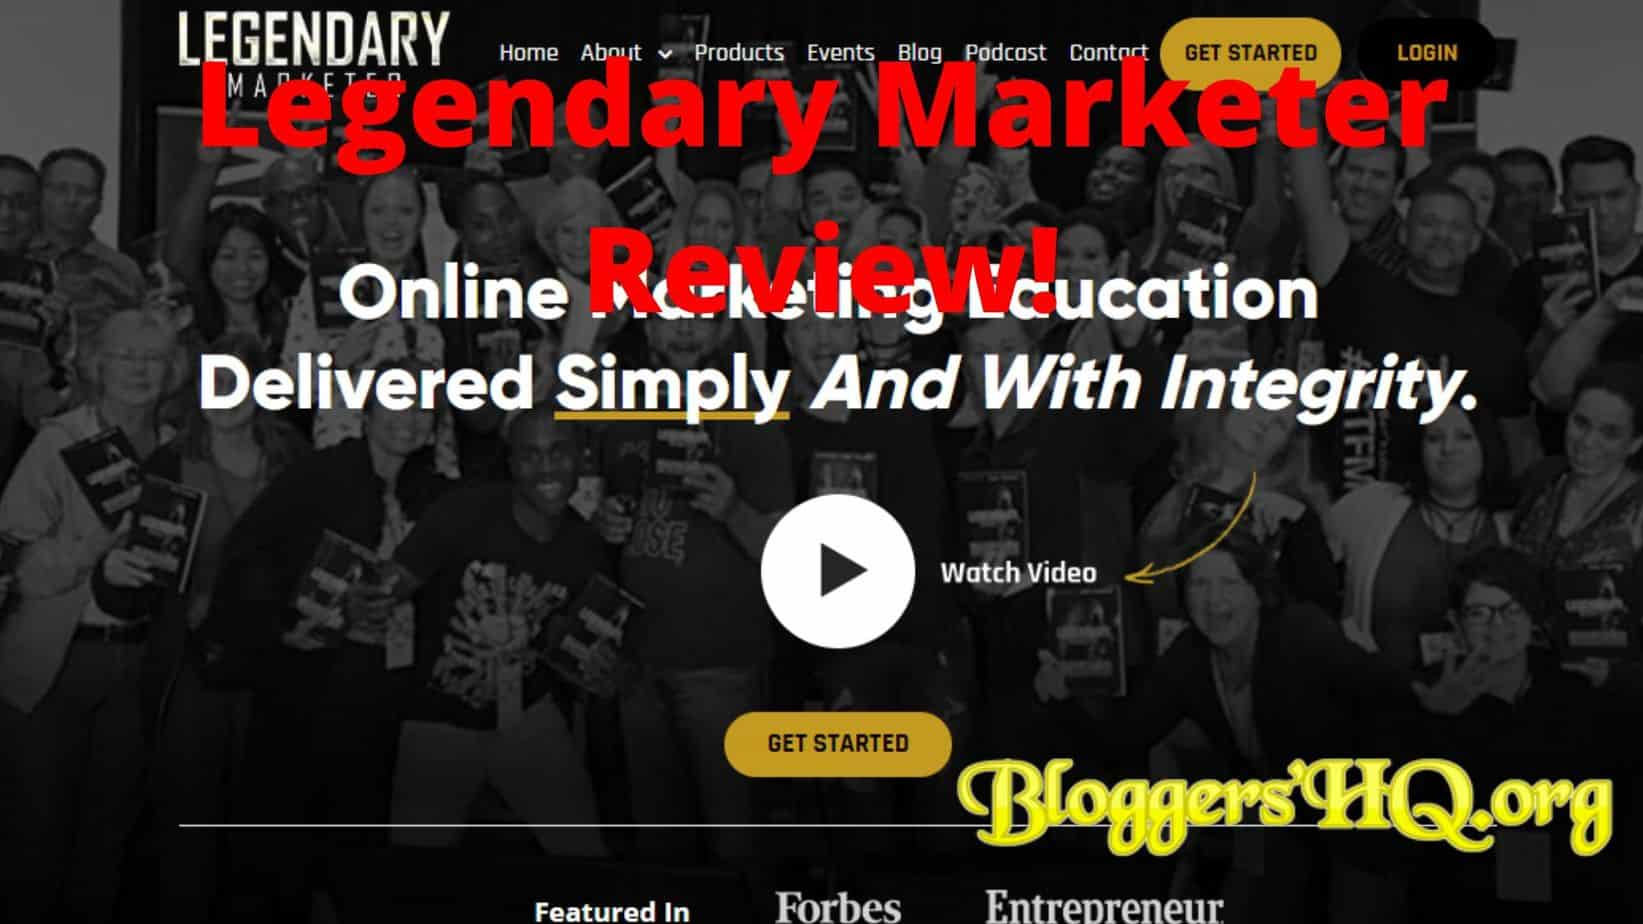 Cheap Legendary Marketer Internet Marketing Program Sale